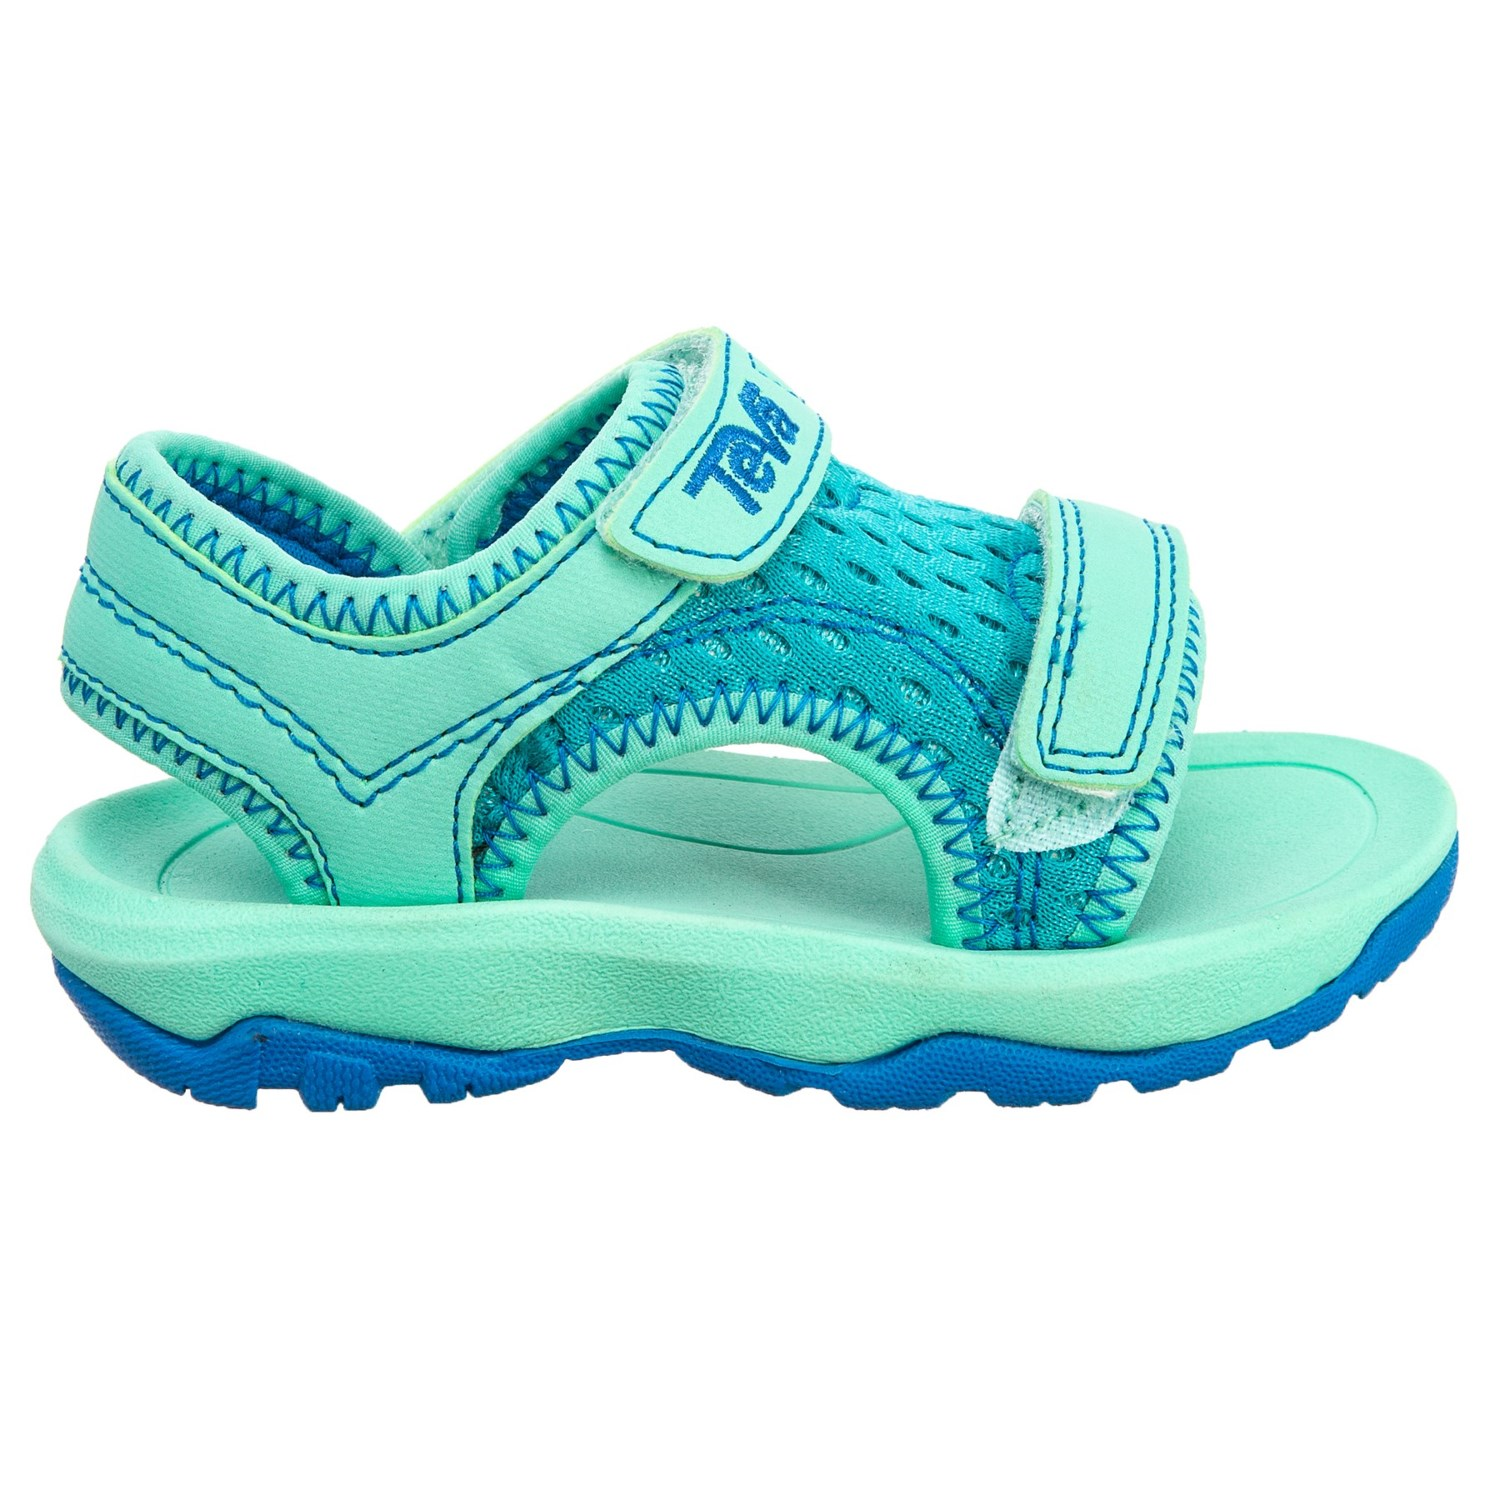 94a1b10101868e Teva Psyclone XLT Sport Sandals (For Girls) - Save 20%